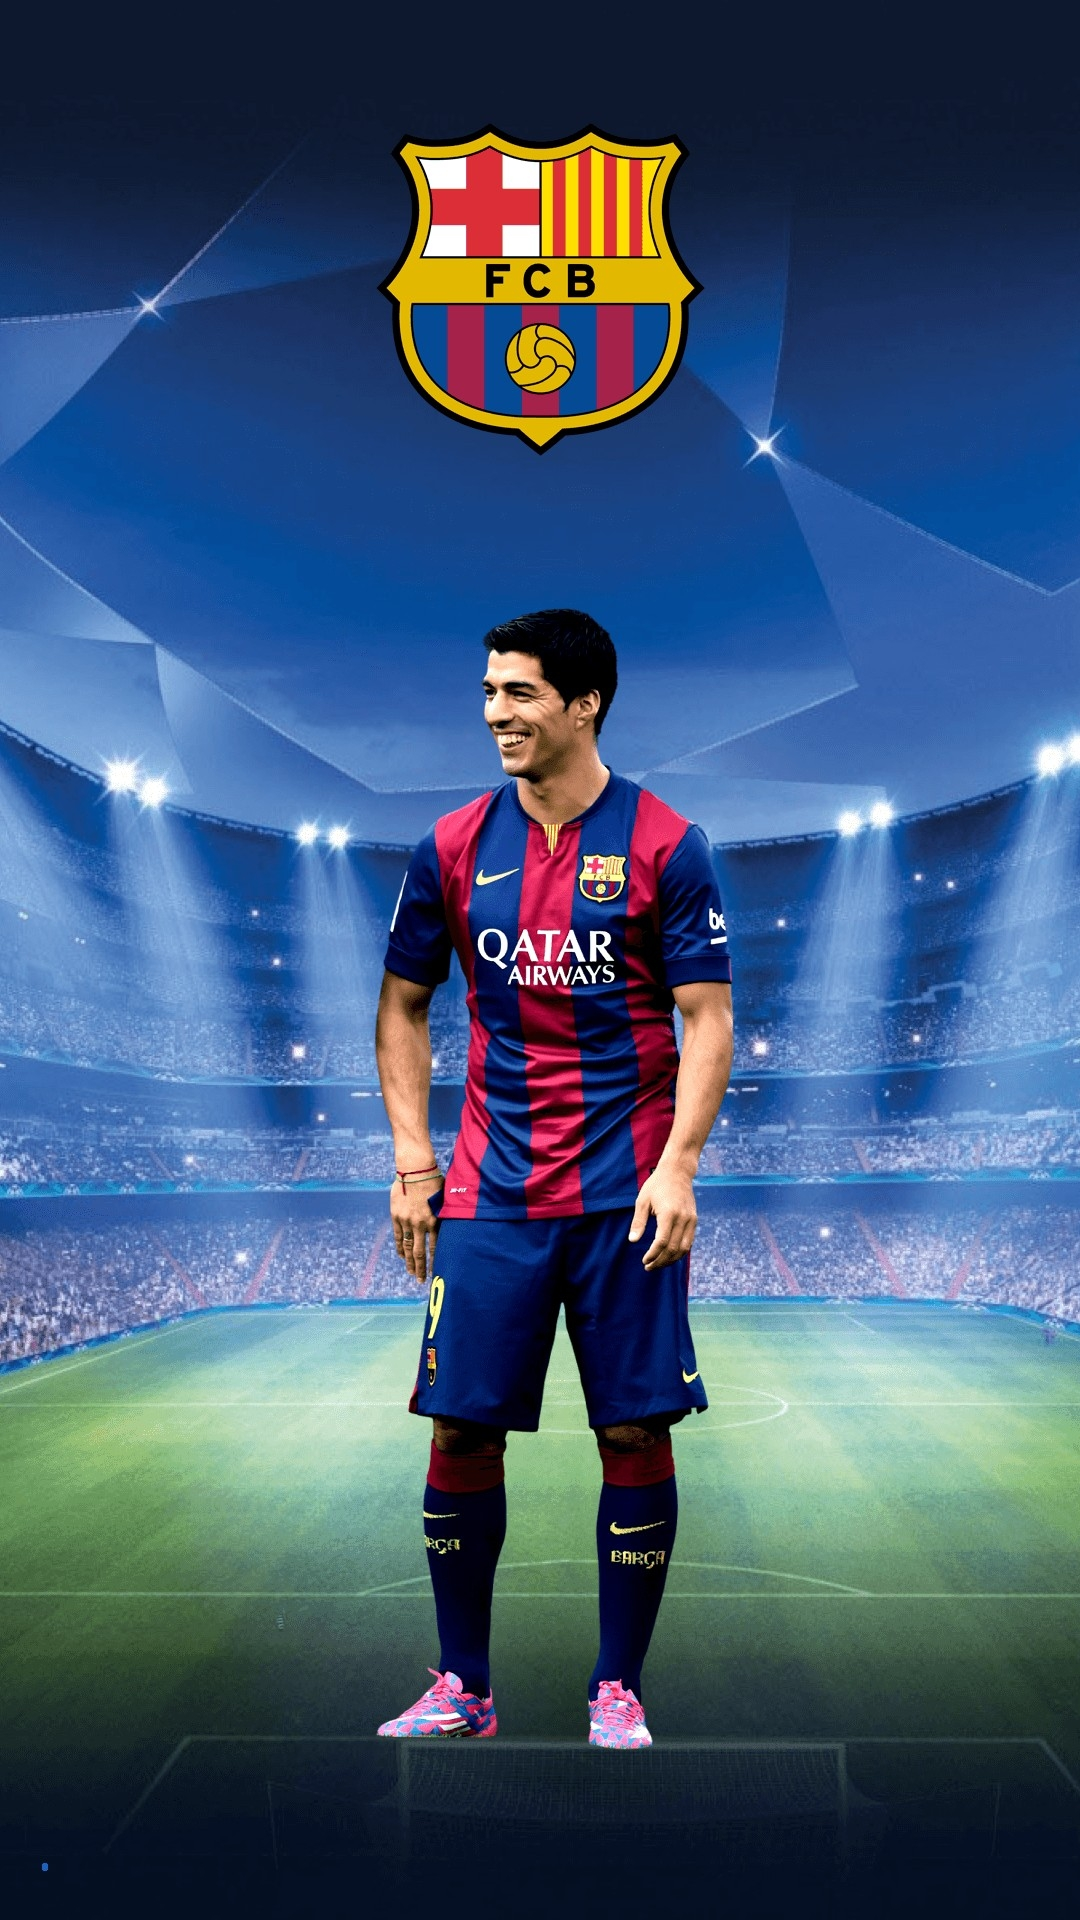 Barca Wallpaper For Iphone Posted By Ethan Walker